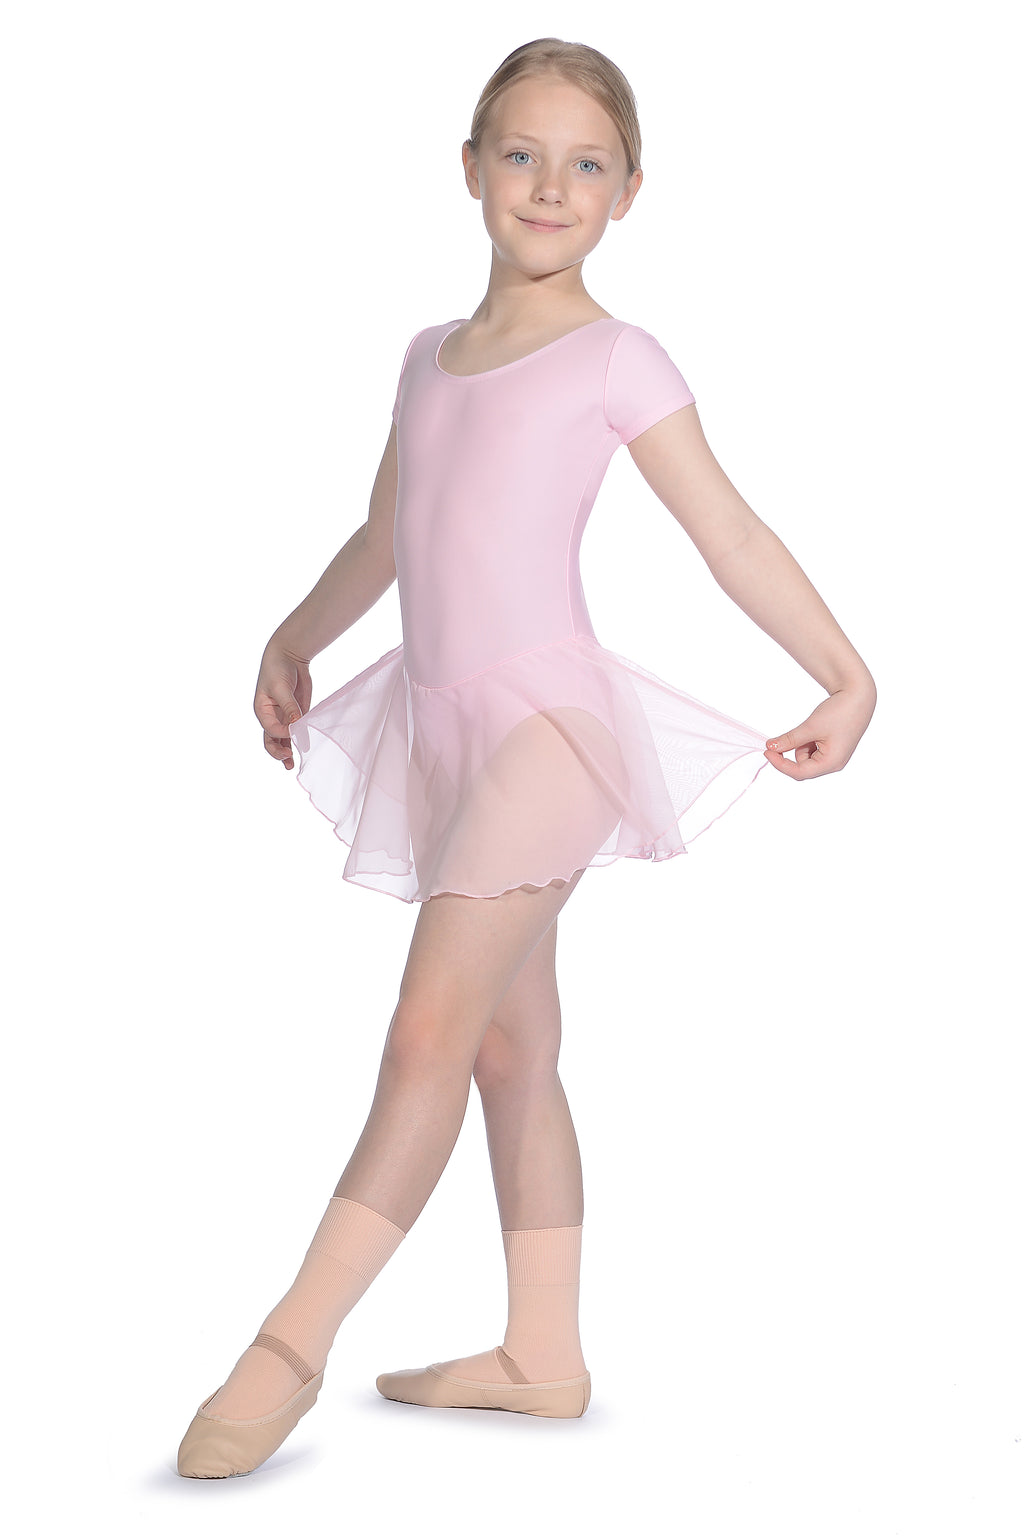 Roch Valley Leotard with attached skirt - pink - full length